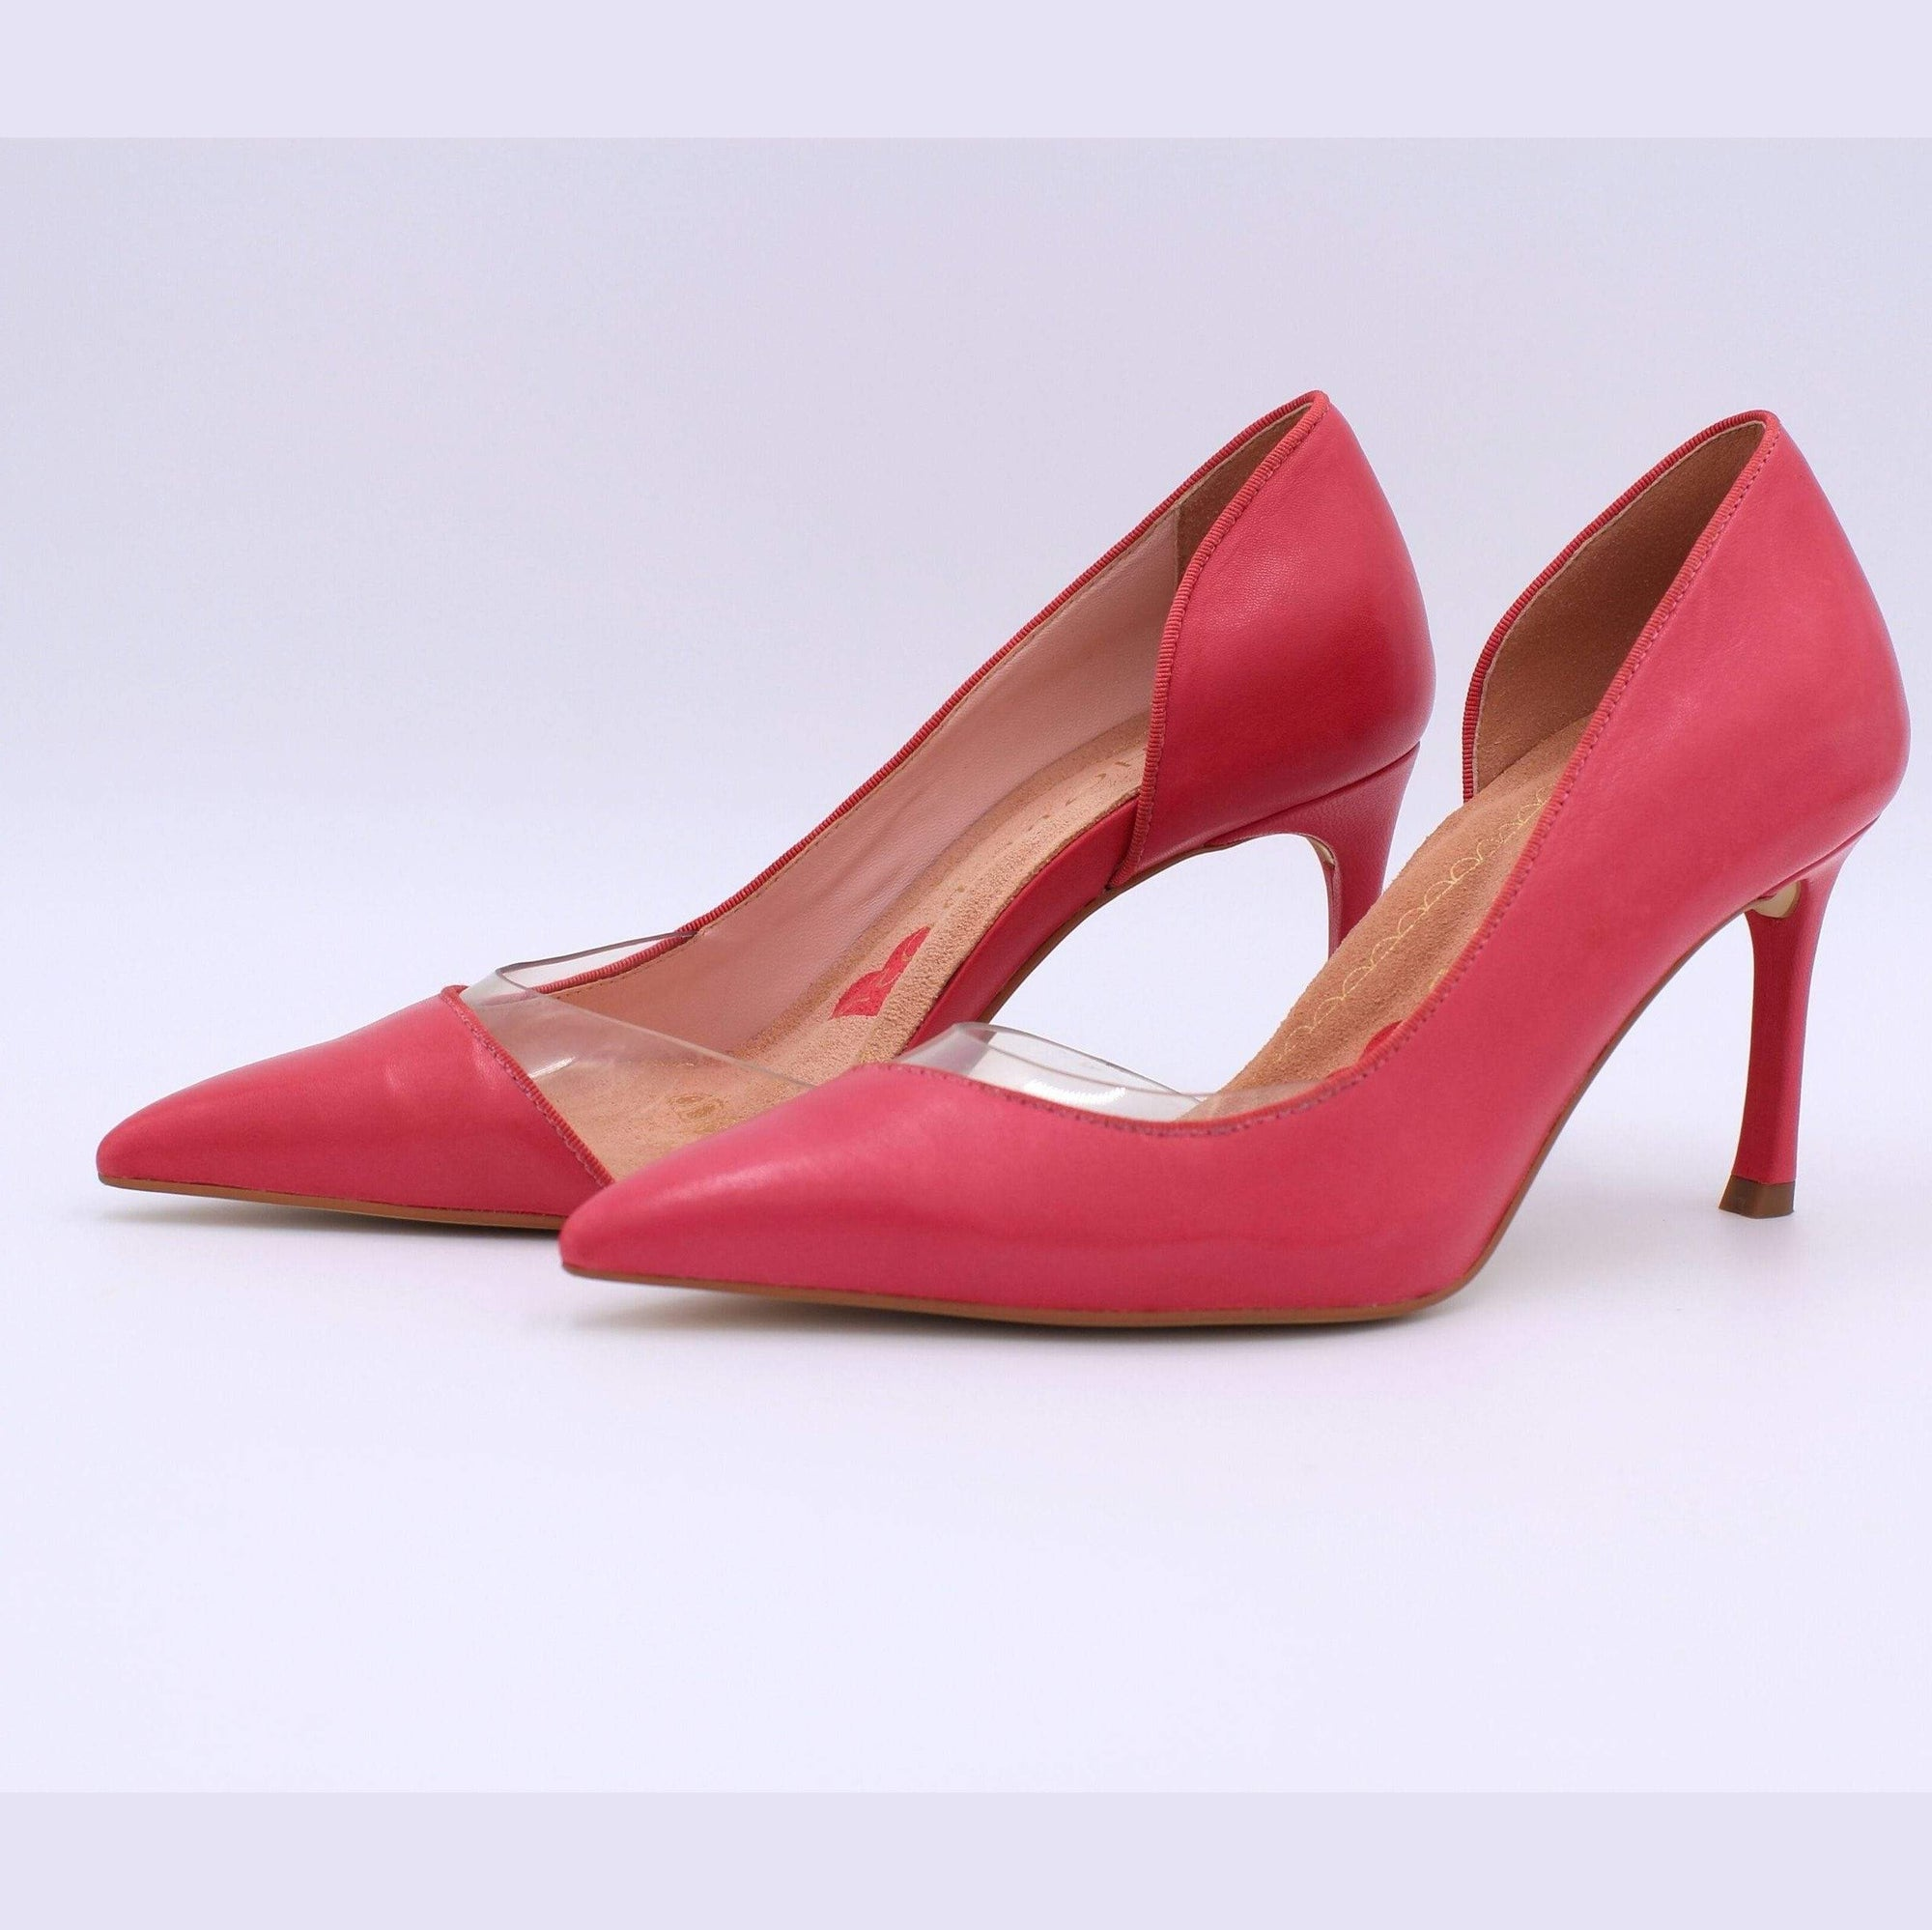 HOPE ROSA Pumps STUNNER - CANDY PINK